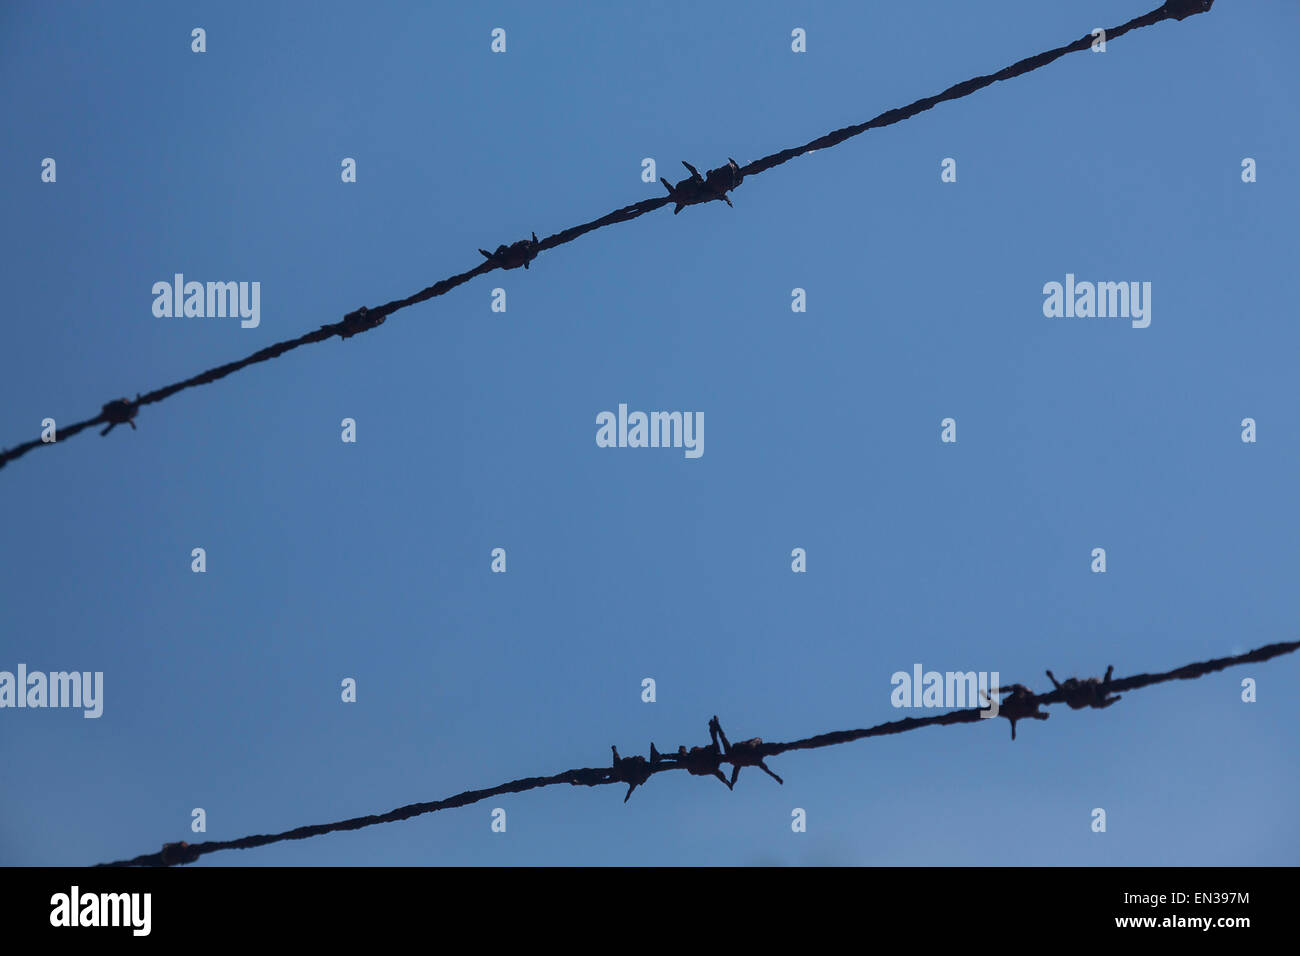 Barbed wire against blue sky, Germany Stock Photo